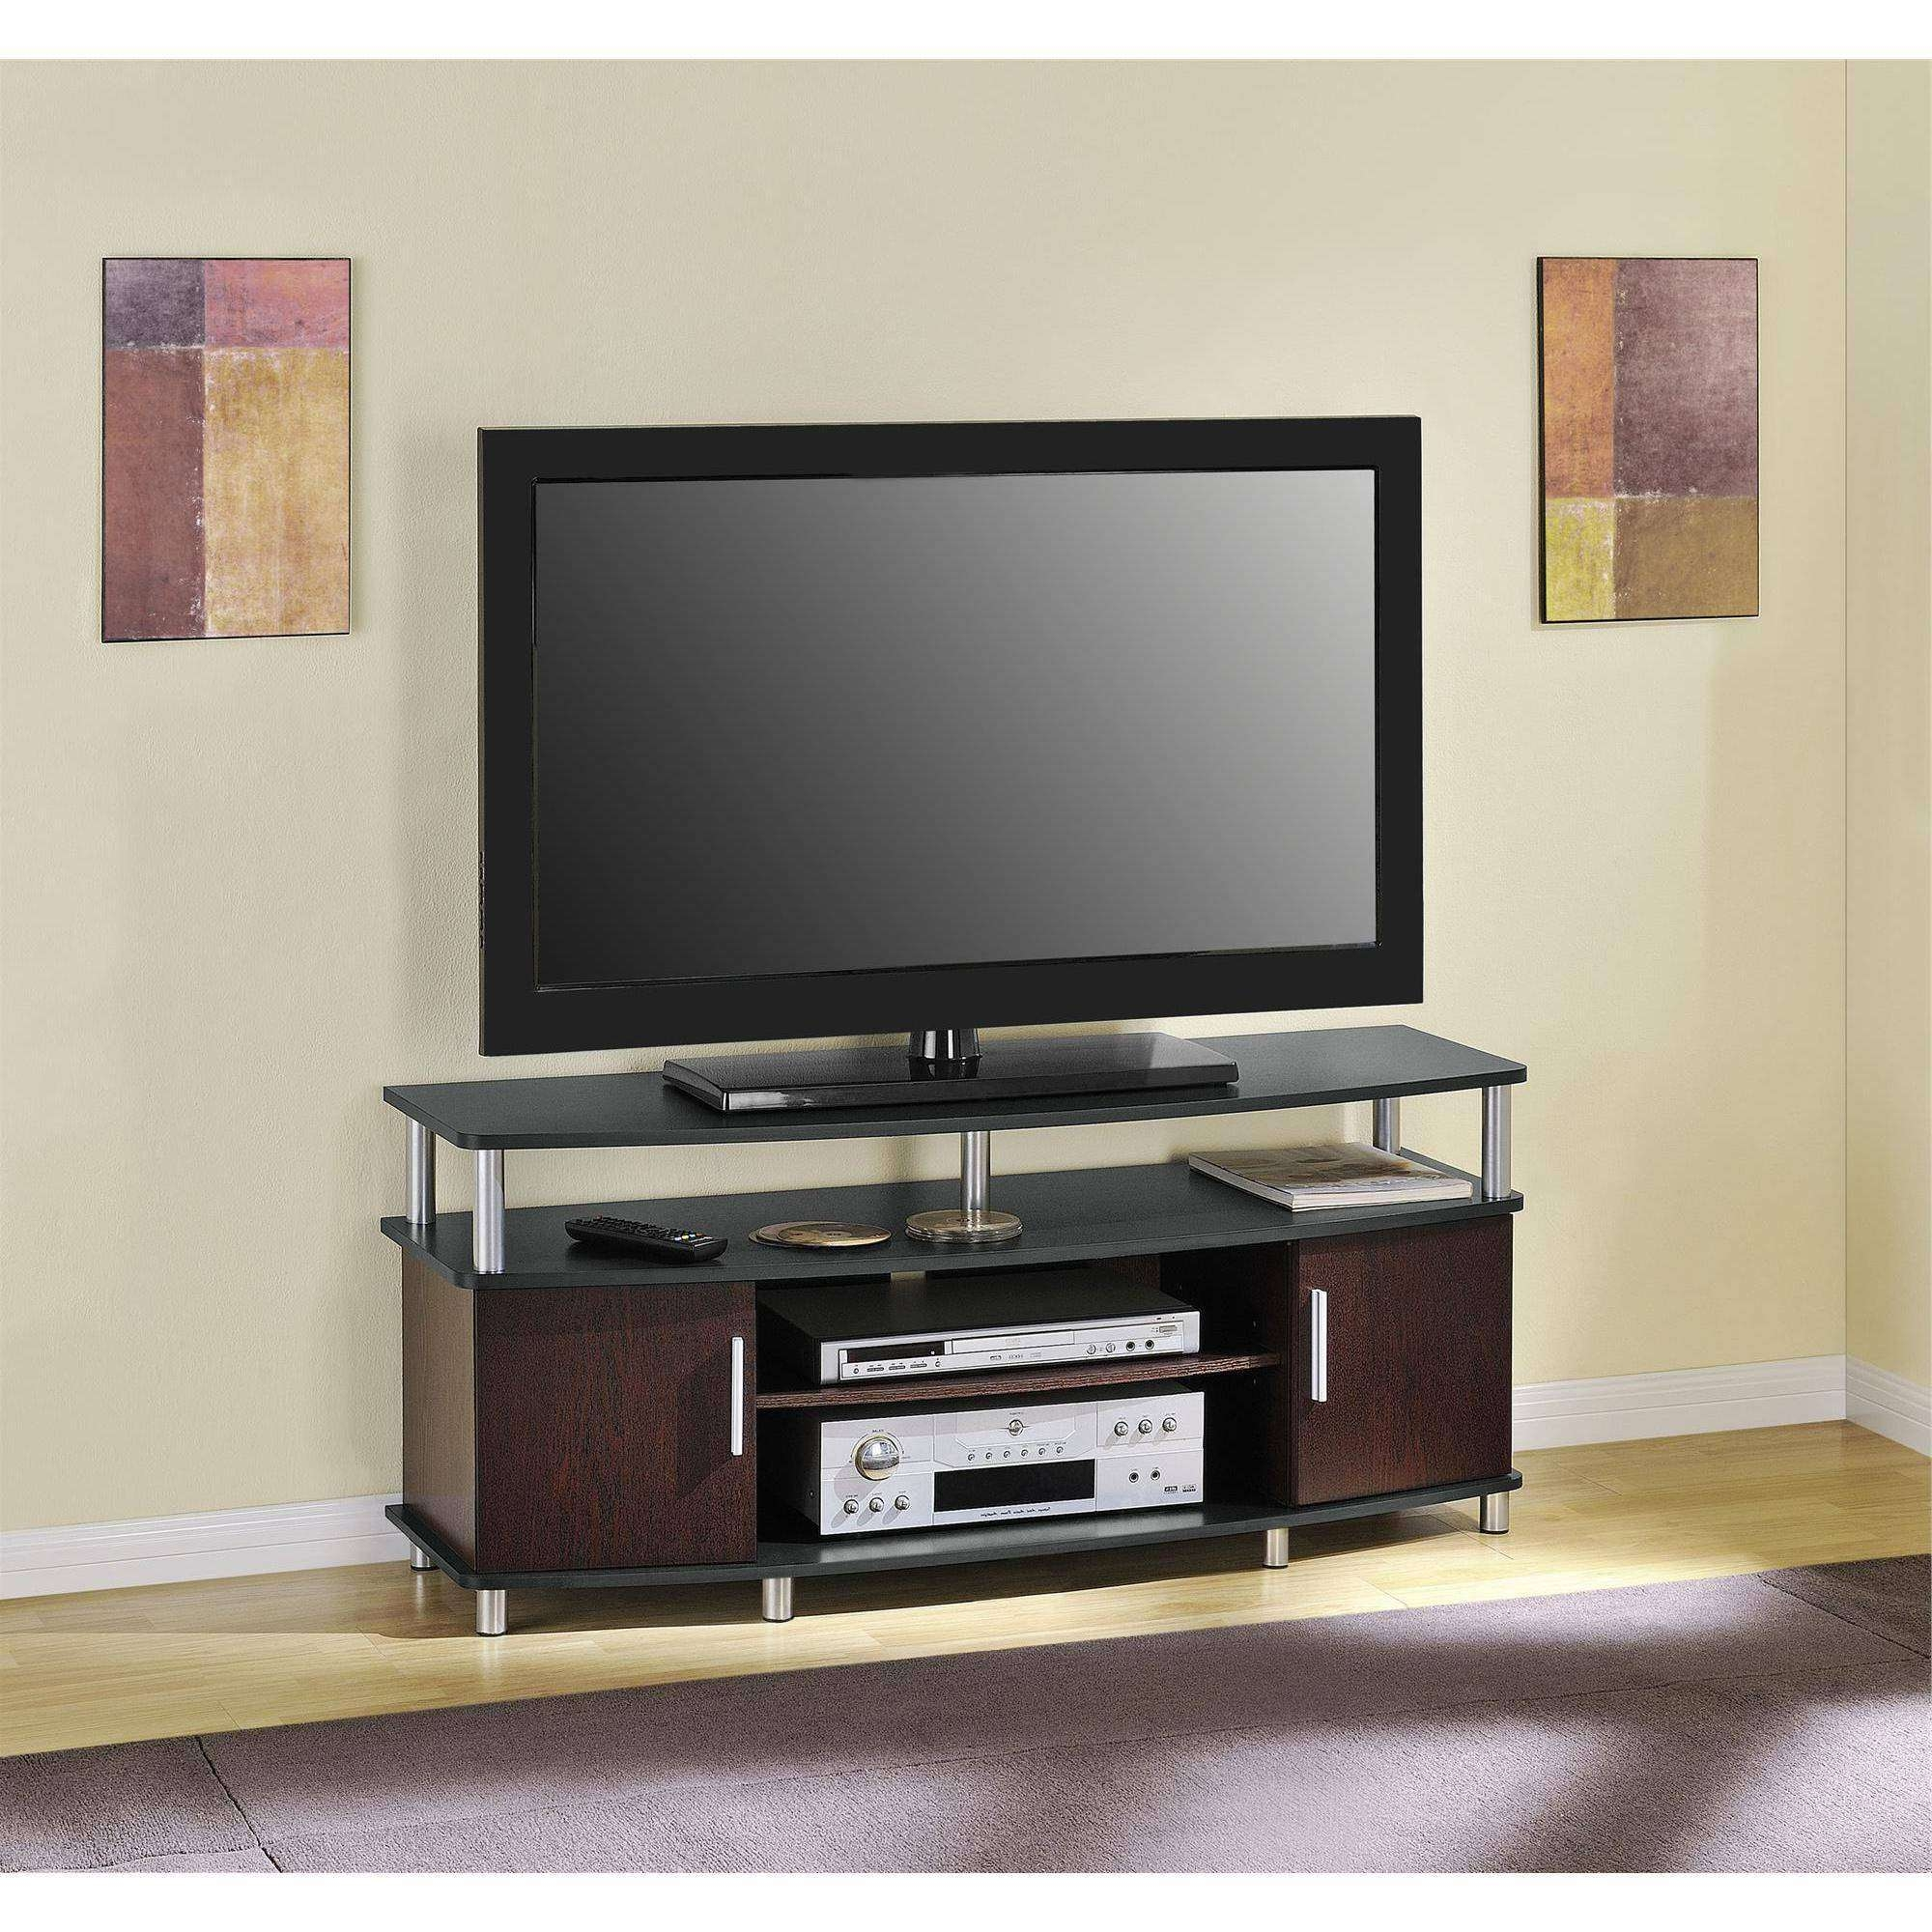 30 Awful Wood Tv Stand 50 Inch Image Inspirations Wood Tv Stand 60 In 50 Inch Corner Tv Cabinets (View 12 of 20)